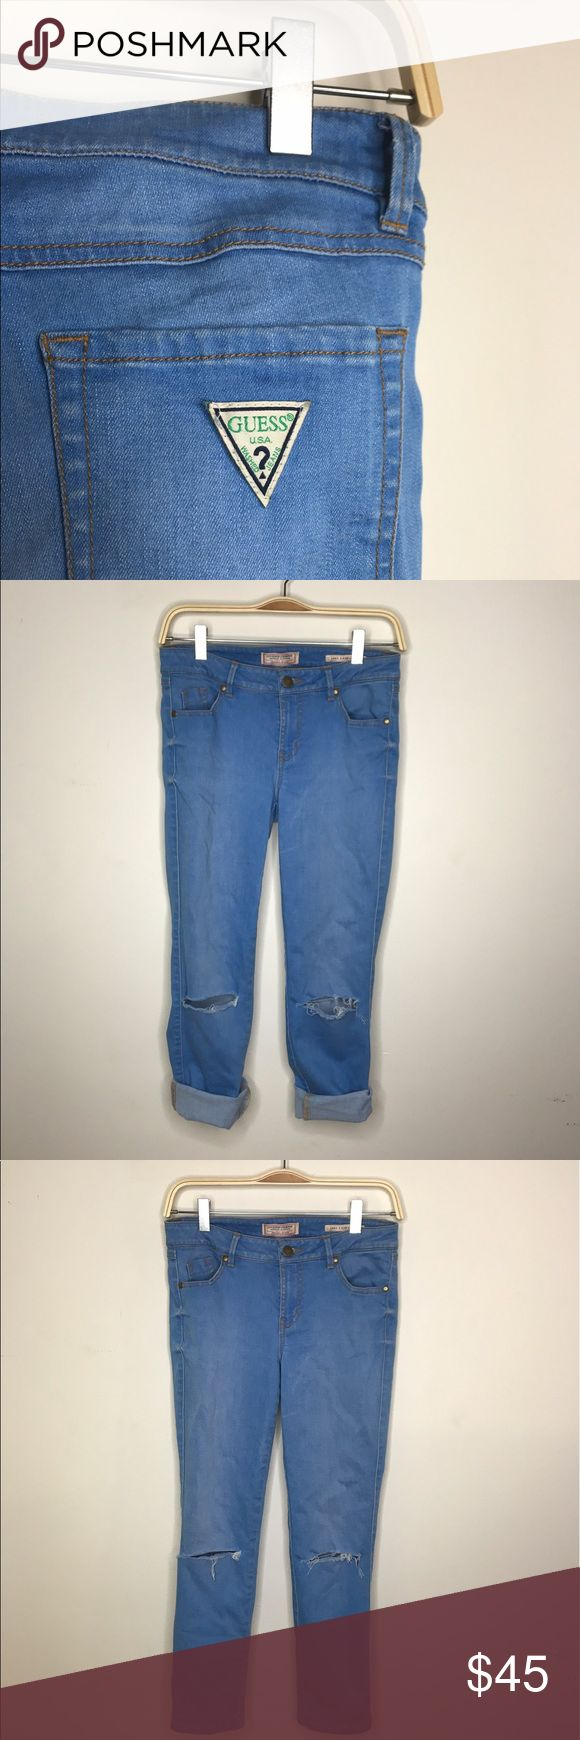 Guess? originals Cropped Jeans Holes in the knees - bright blue indigo Guess Jeans Ankle & Cropped